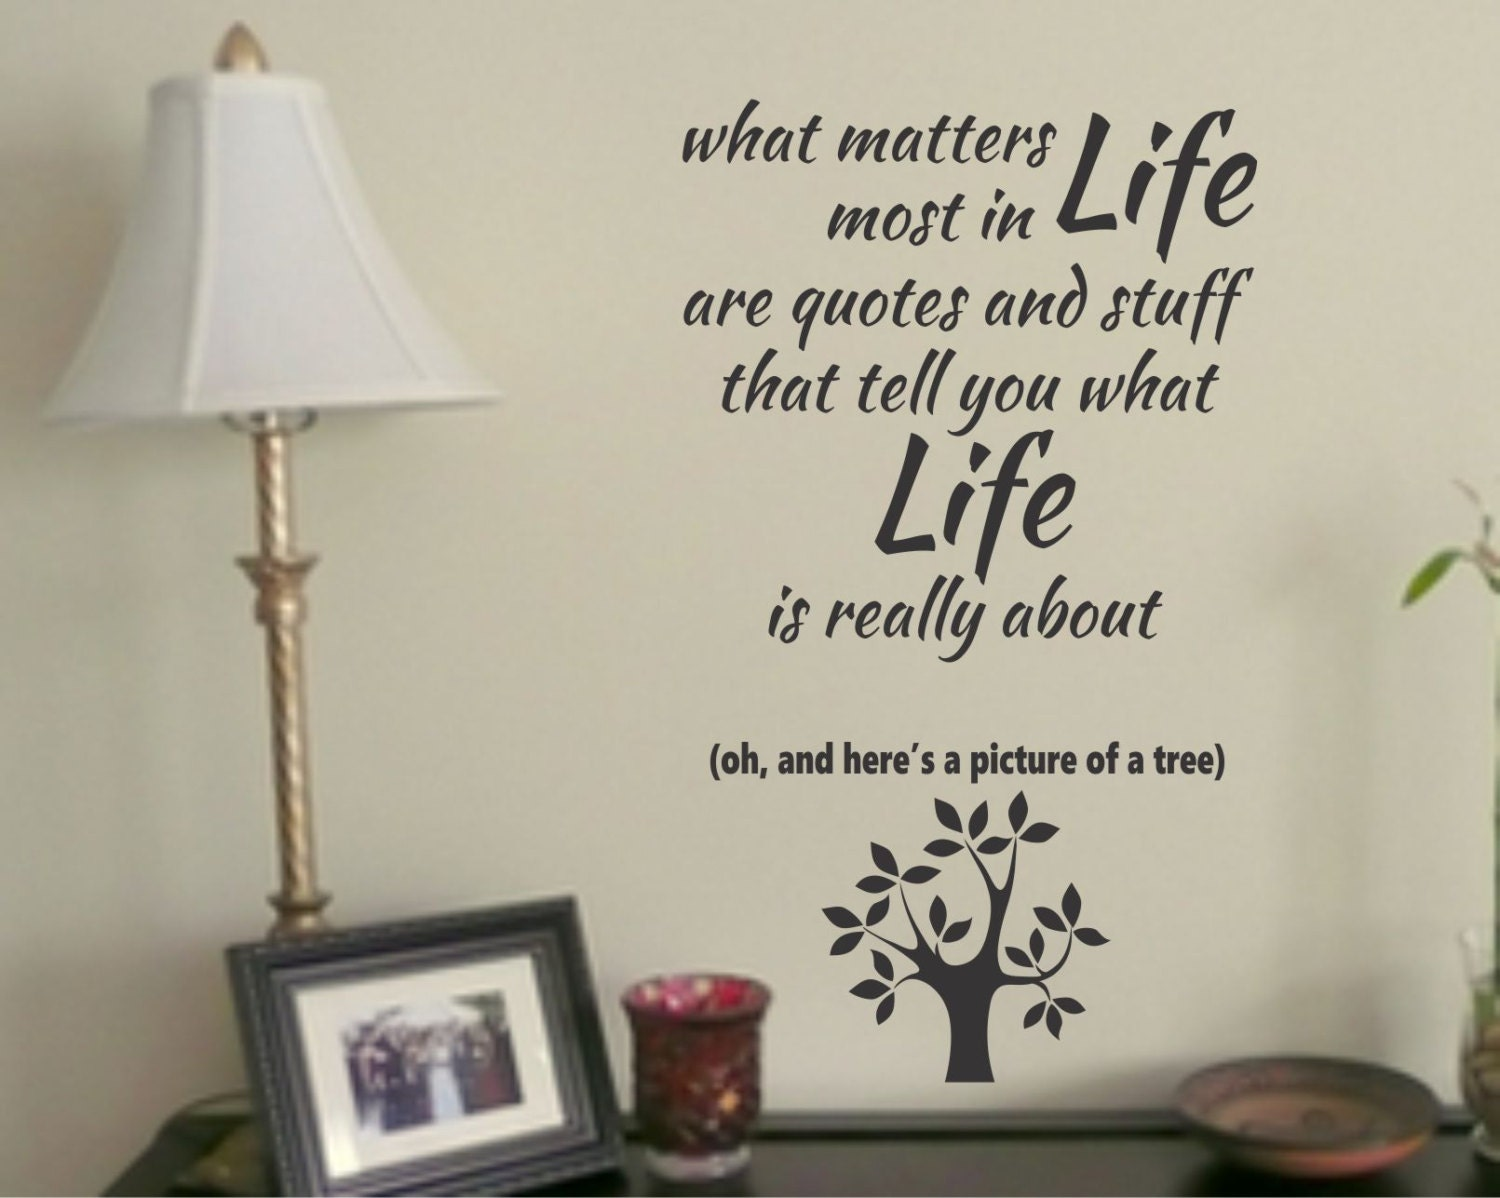 Life Wall Quotes Matters Most In Life Are Quotes Vinyl Wall Lettering Vinyl